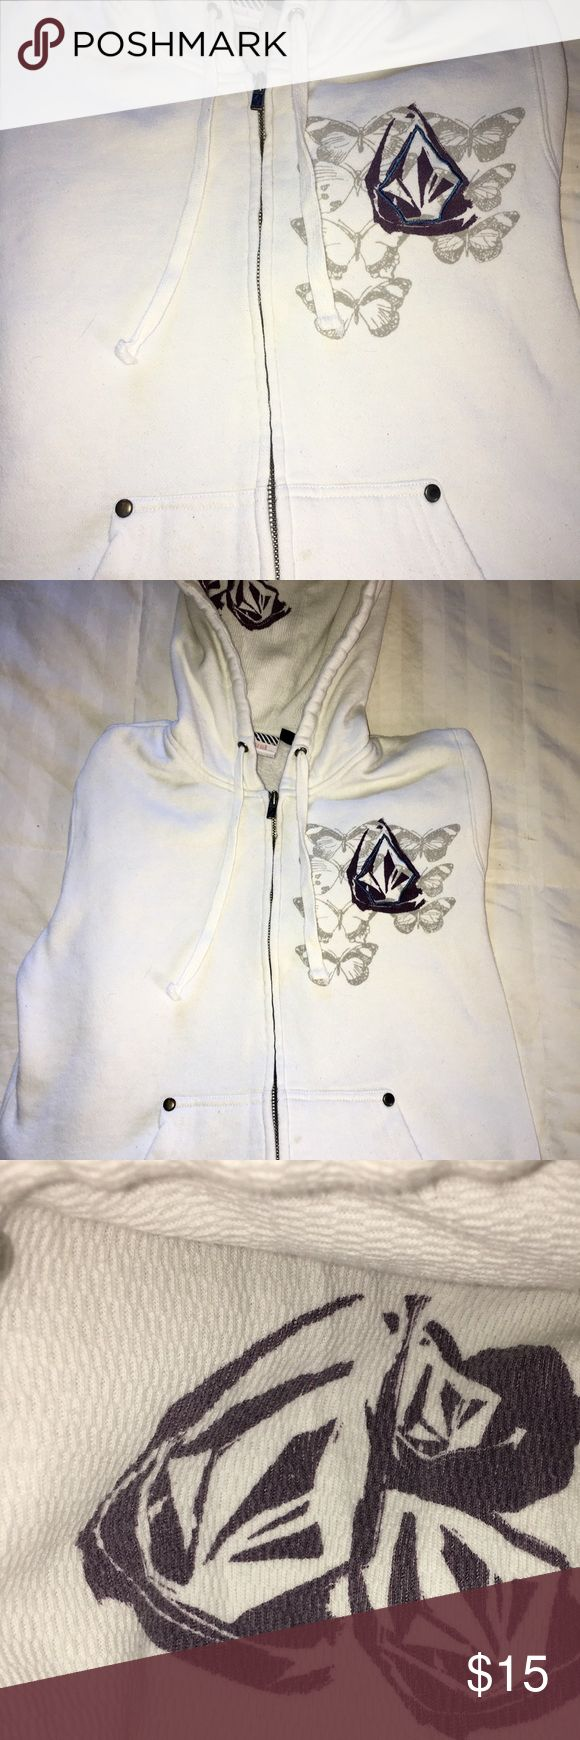 Women's Volcom Hoody zip-up w/butterfy print M So practical and fashionable, this cream colored Volcom zip up hoodie is perfect for layering.  Excellent pre-loved condition, smoke free. No stains nor issues.  Has a zip up front and studs on the two front slit pockets, embroidery on the back design for a 3-D effect, and print with in the thermal lined hood. Great buy! Volcom Tops Sweatshirts & Hoodies